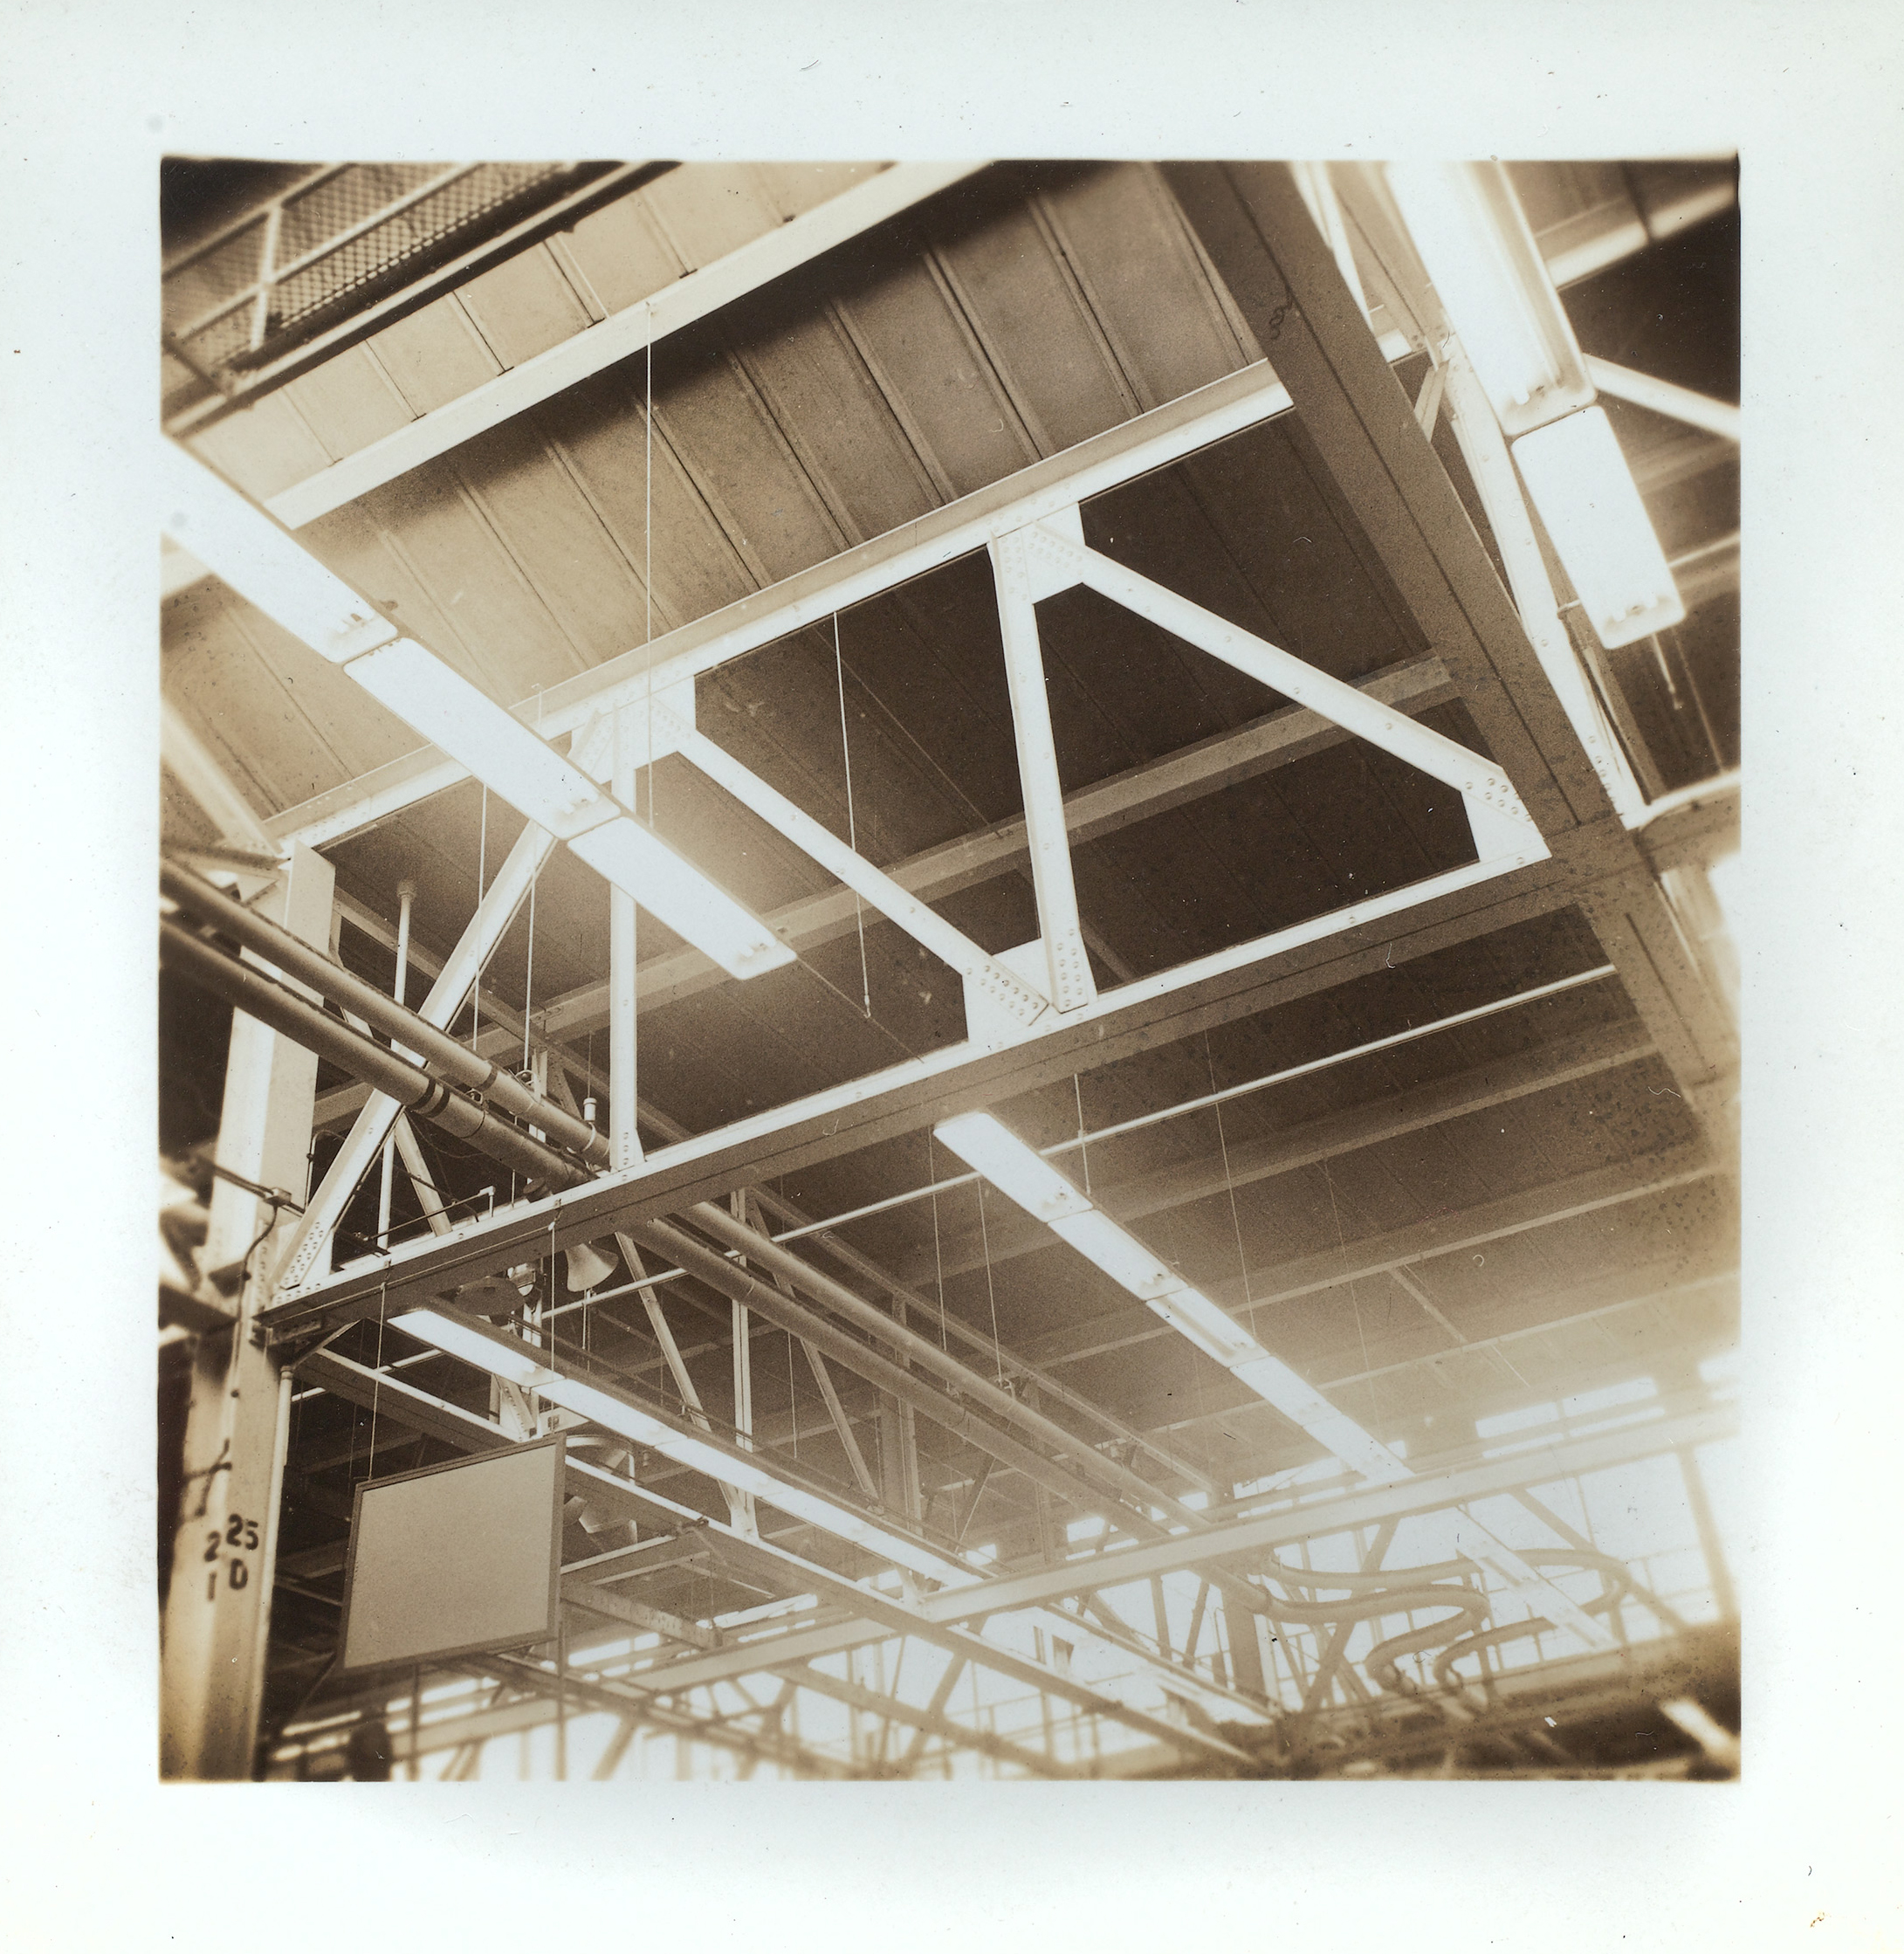 Sepia photograph of the ceiling fixtures in an aircraft plant.